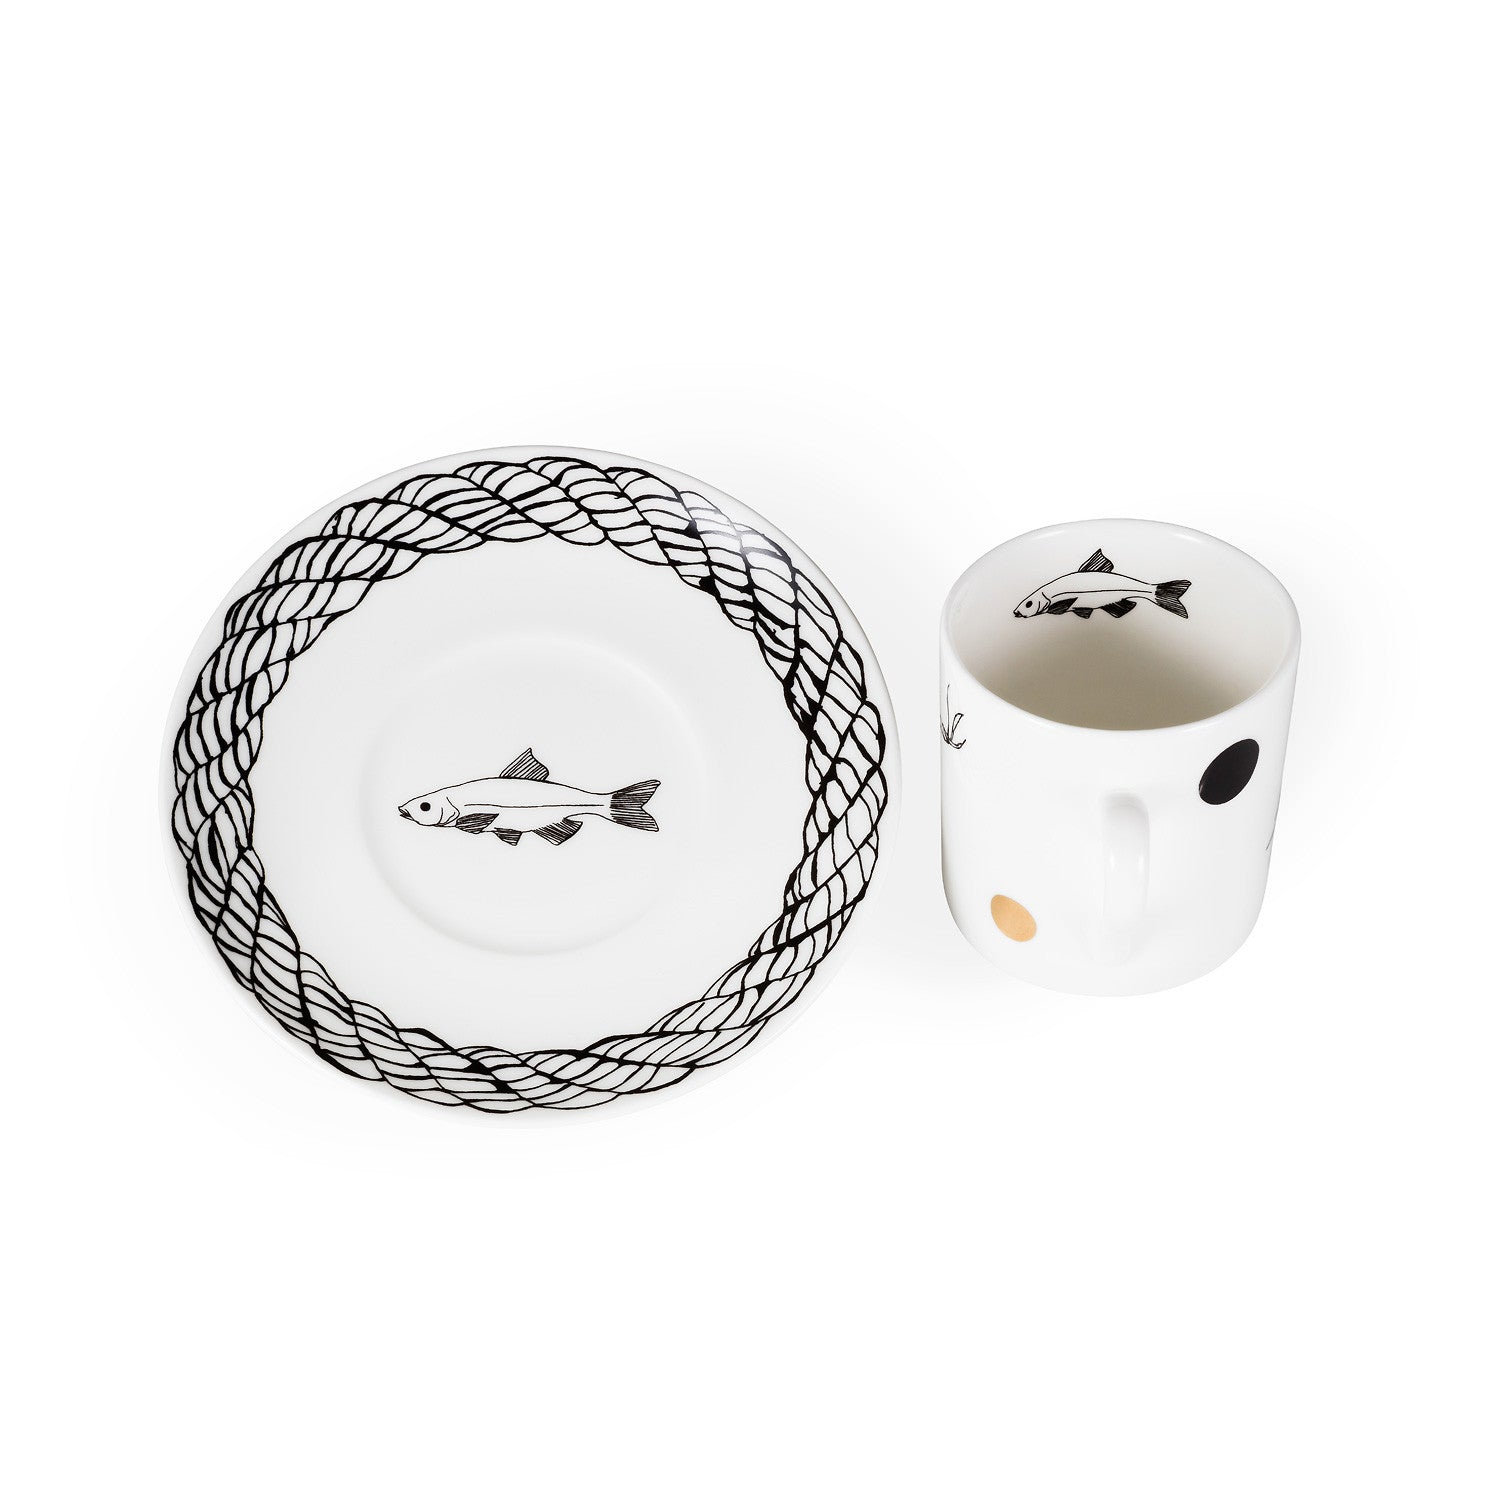 Rope Espresso Cup & Saucer - Harley Boden